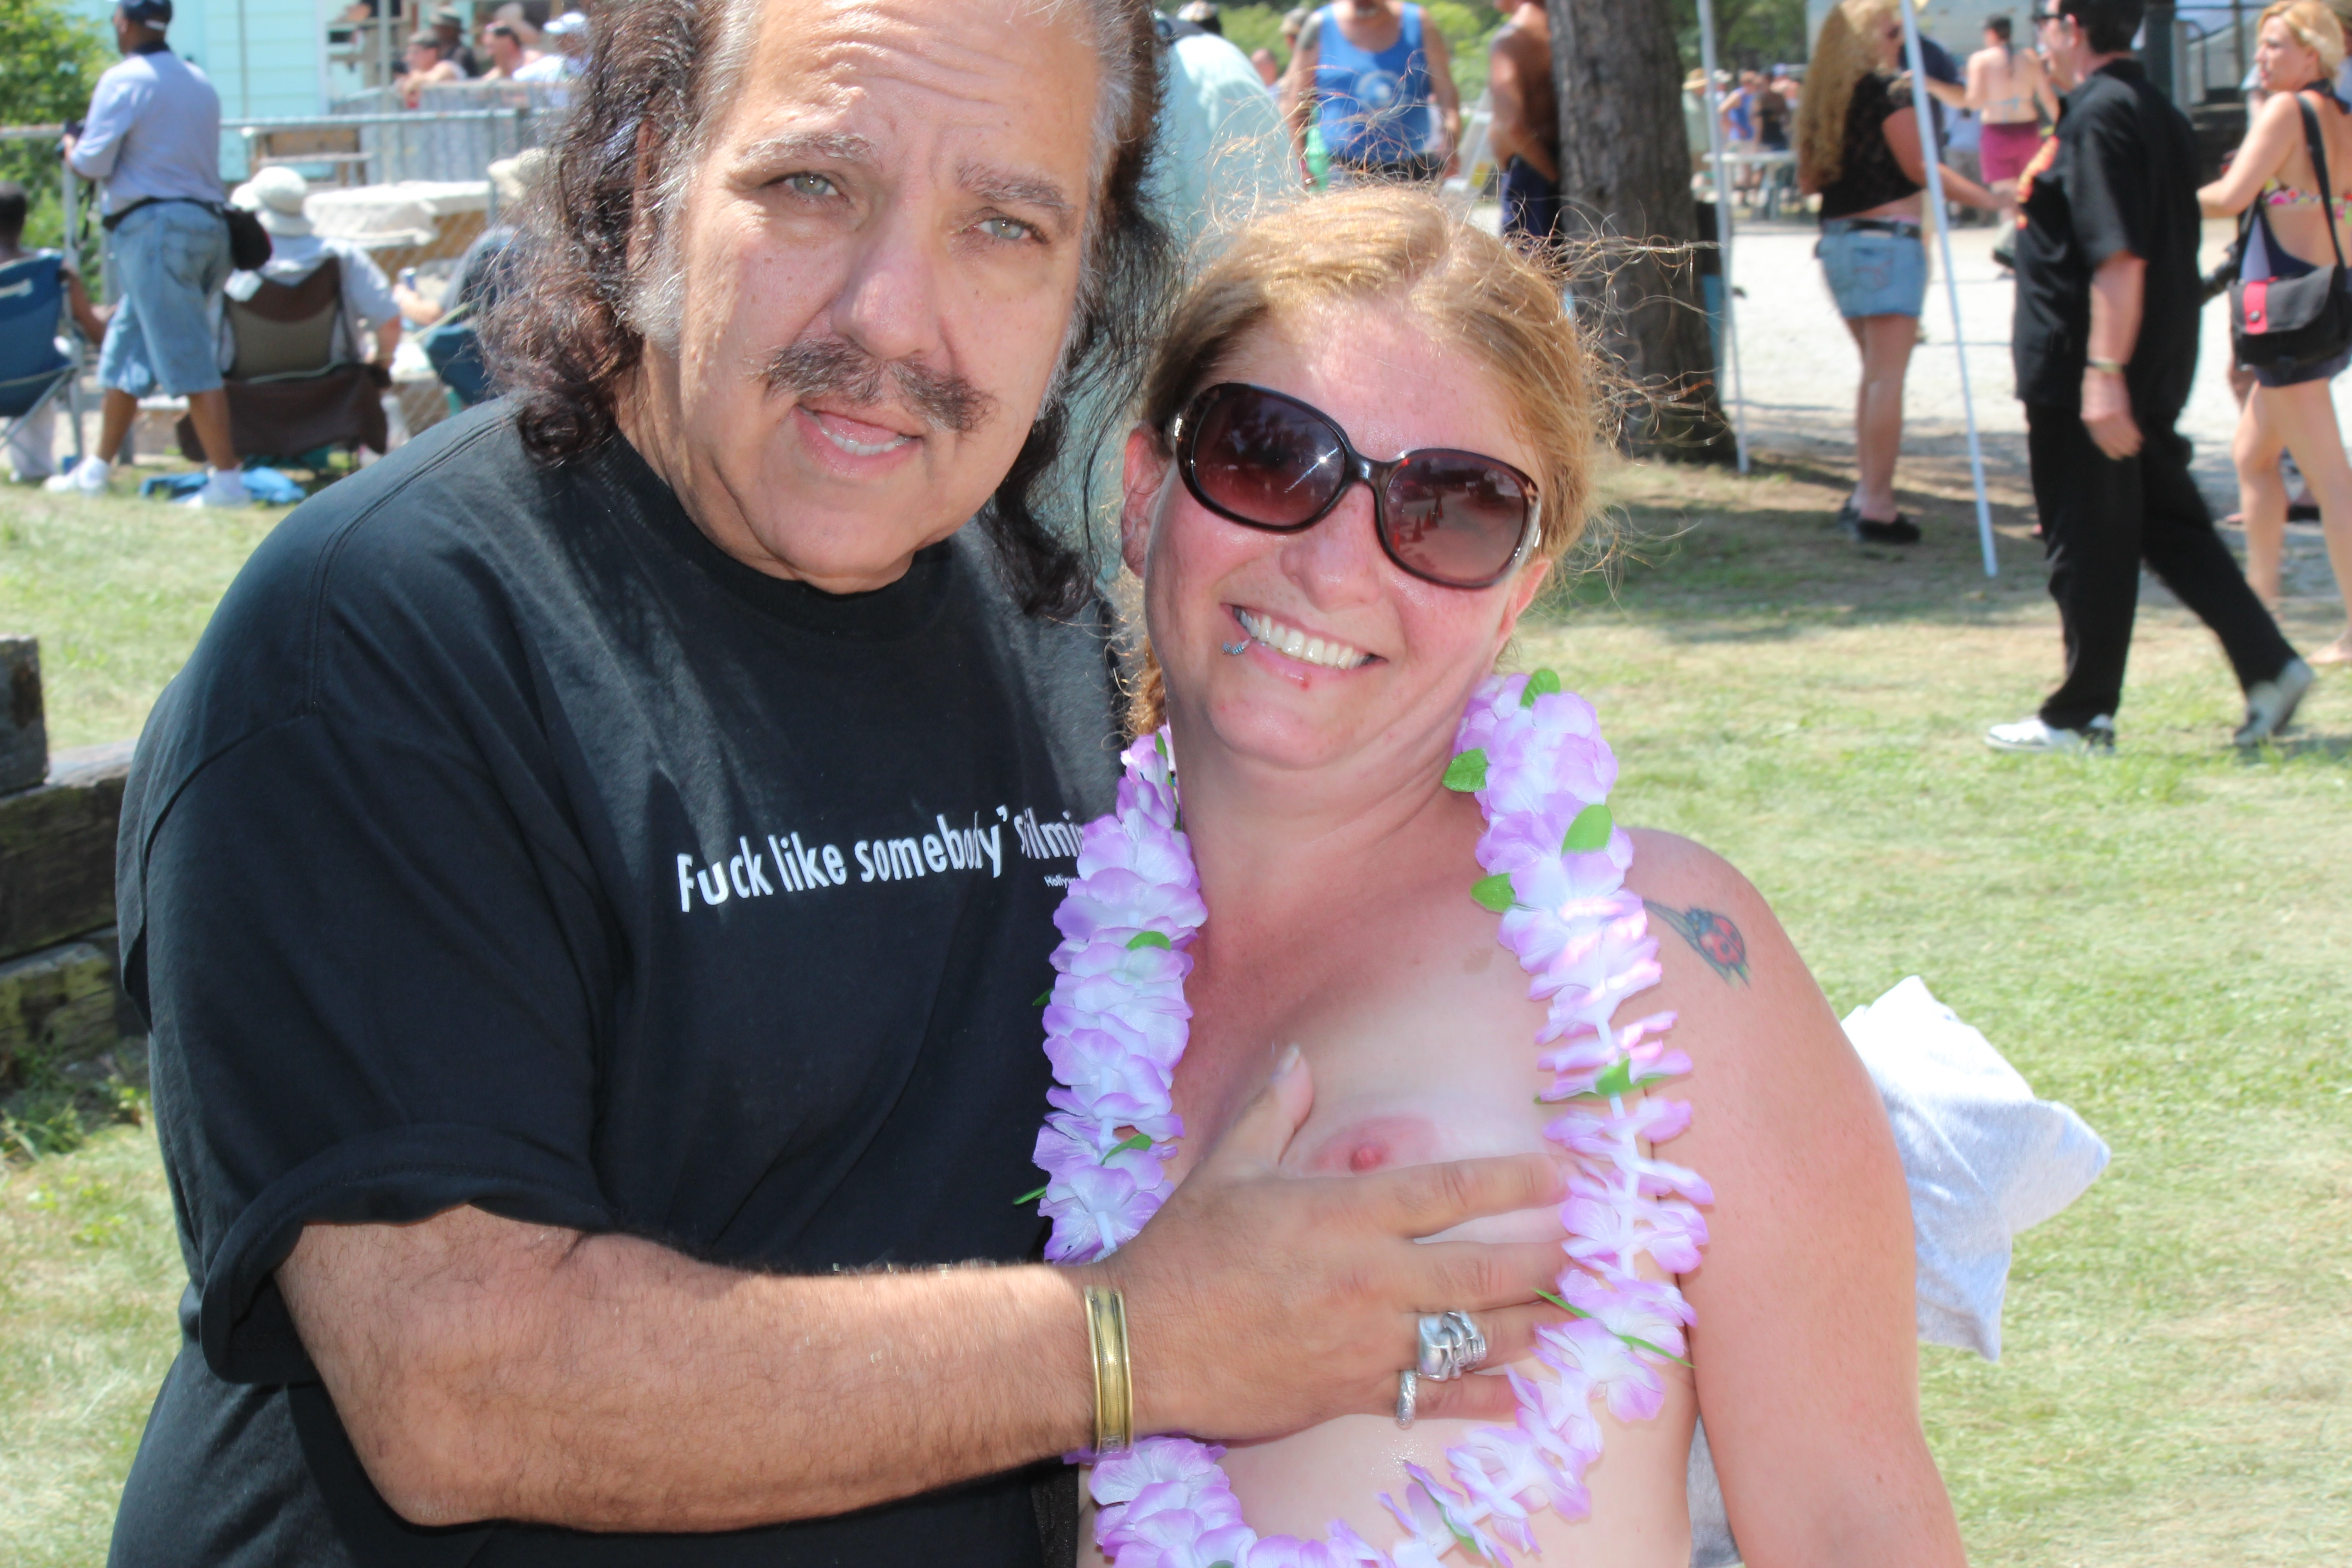 nudes a poppin File:Ron Jeremy at Nudes-A-Poppin' 2013.jpg